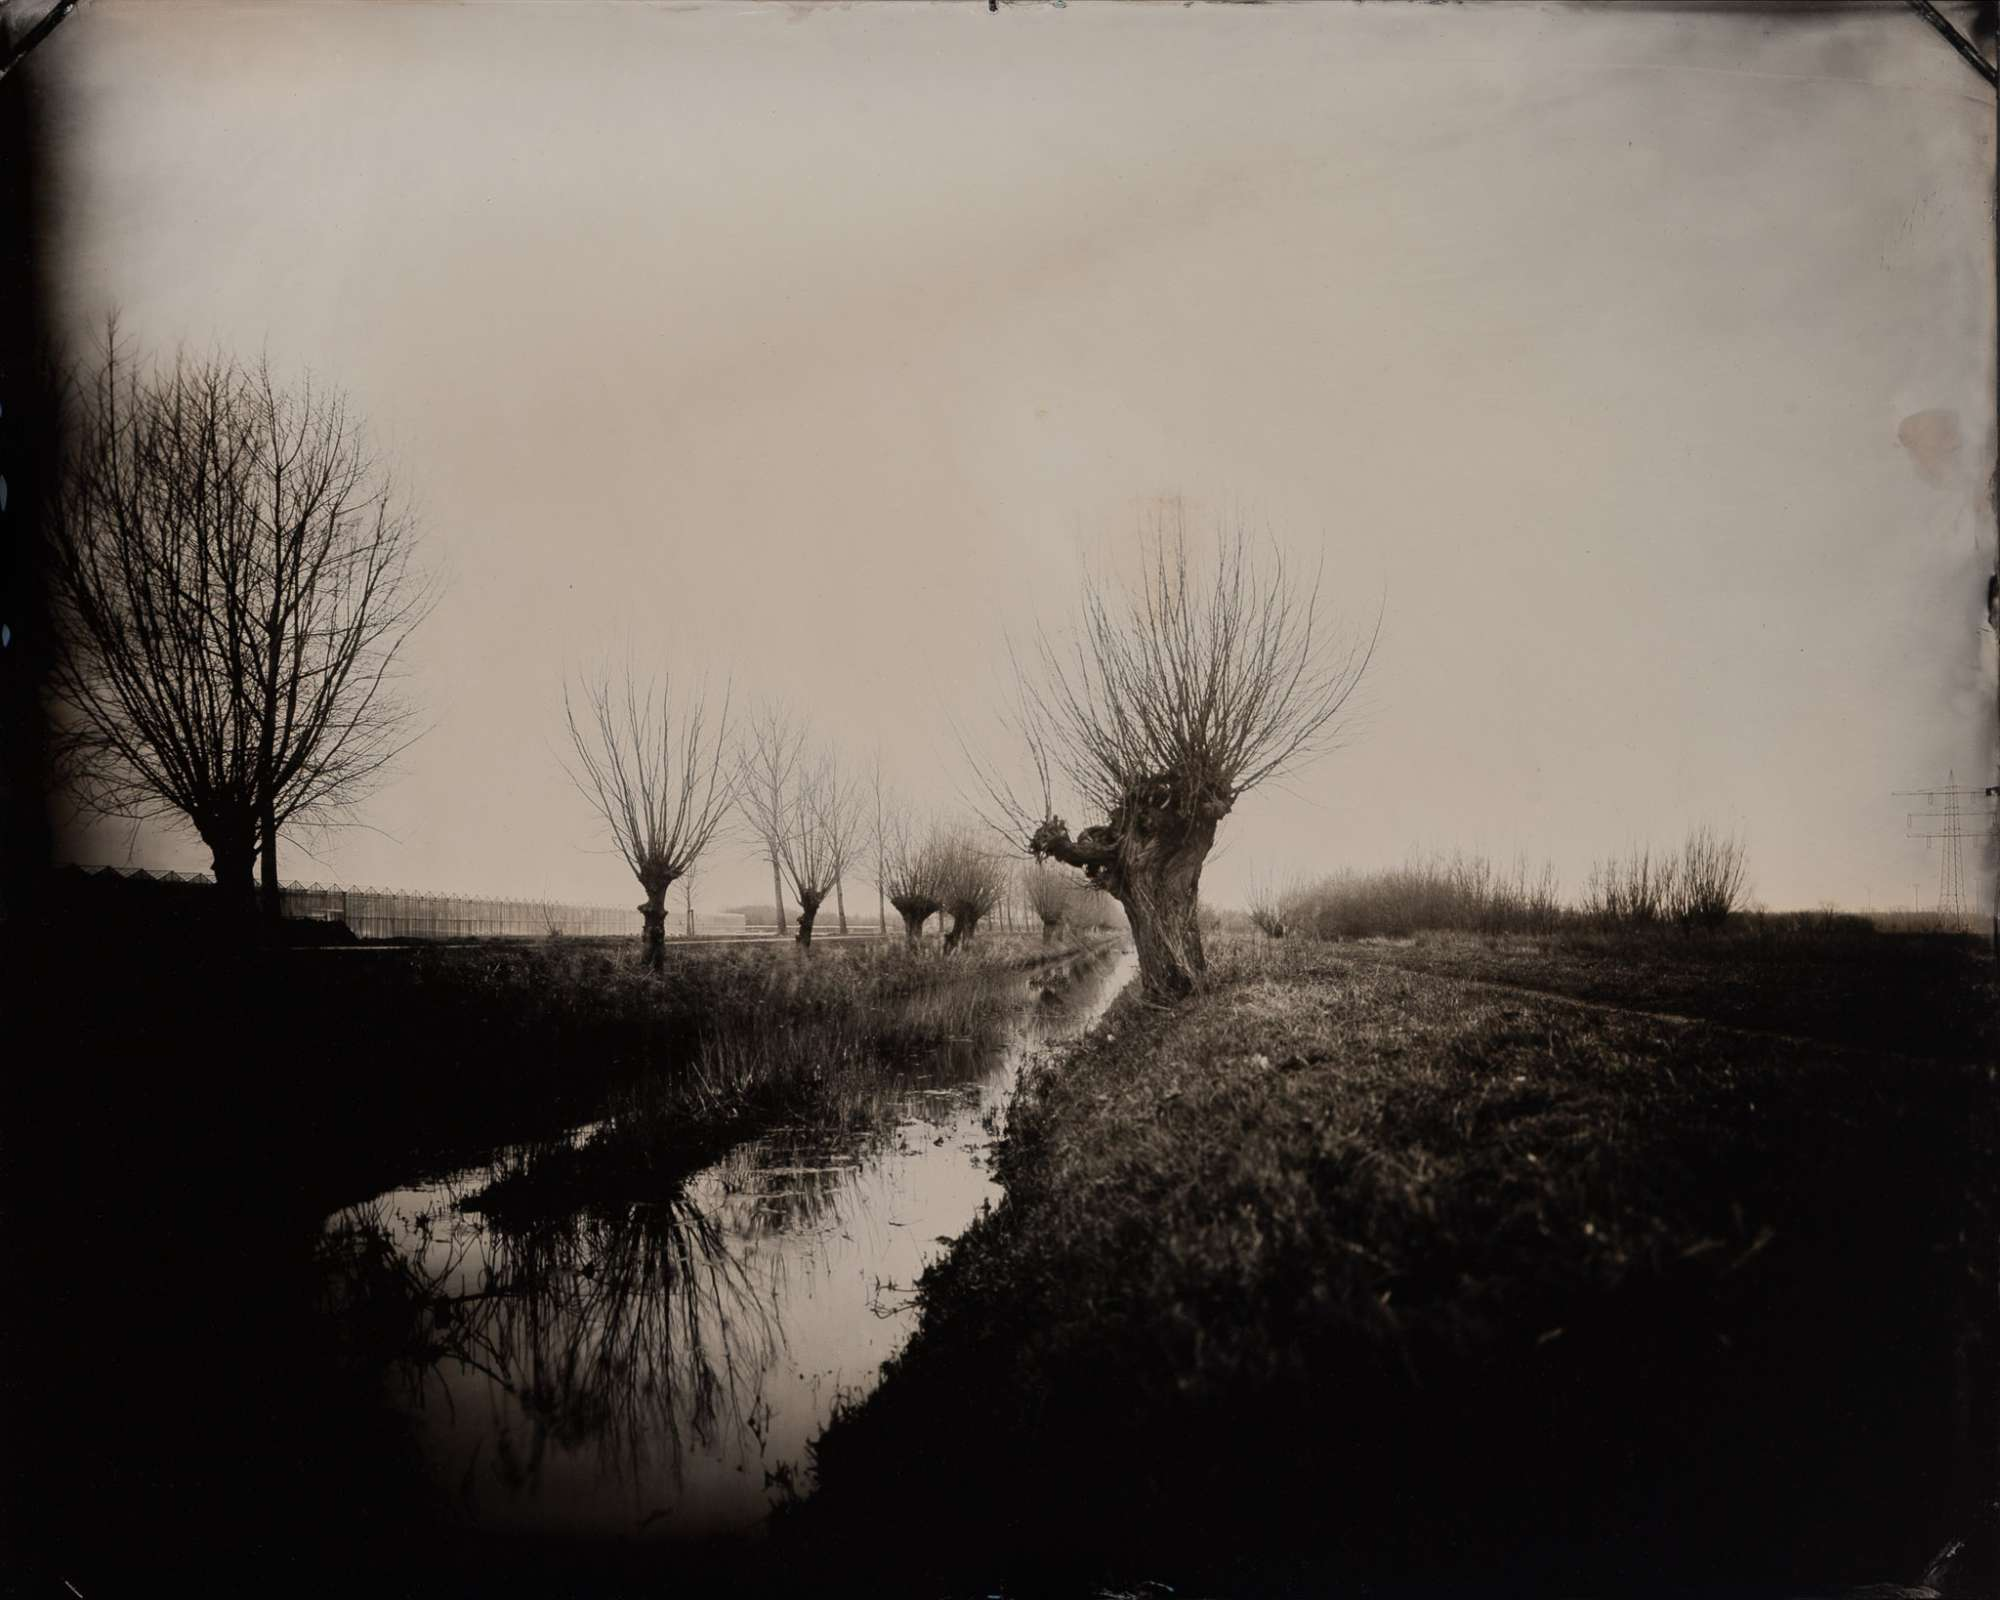 Landscape with Path and Pollard Willows, Etten-Leur, 2020